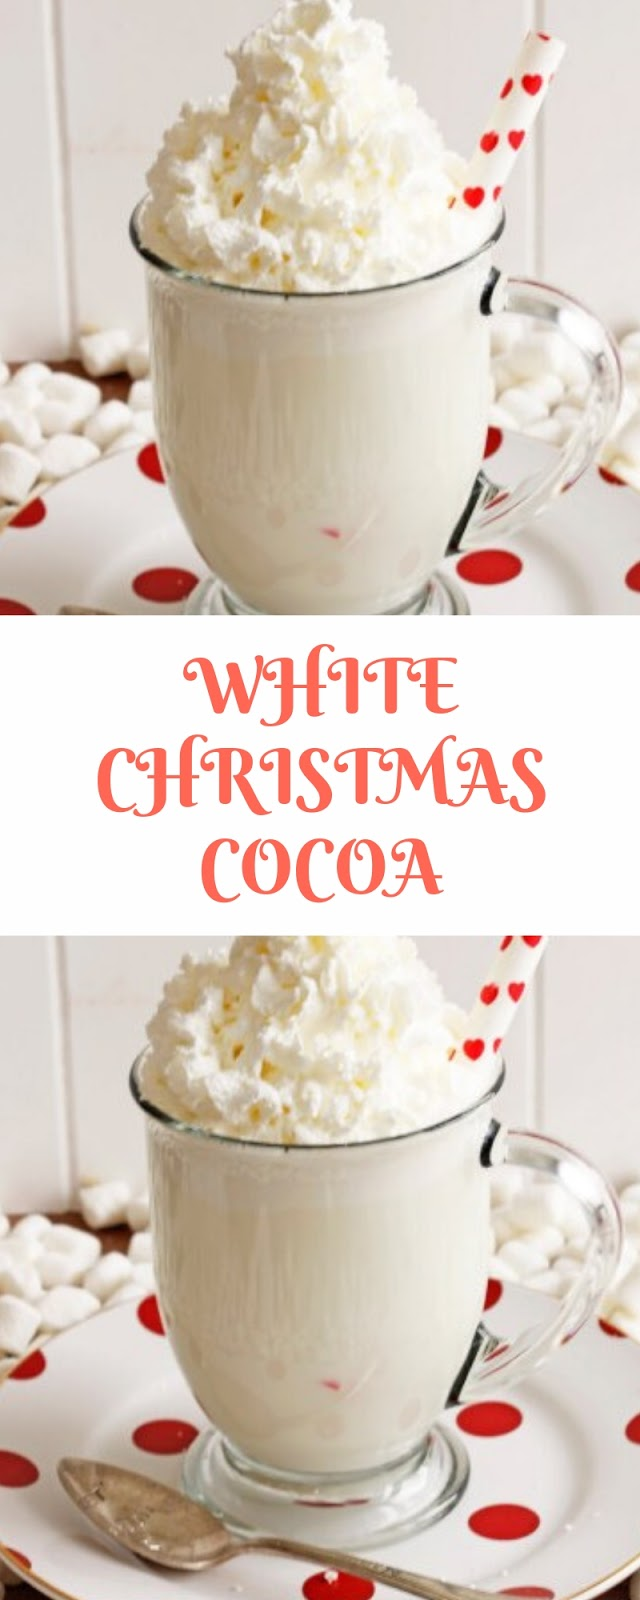 WHITE CHRISTMAS COCOA